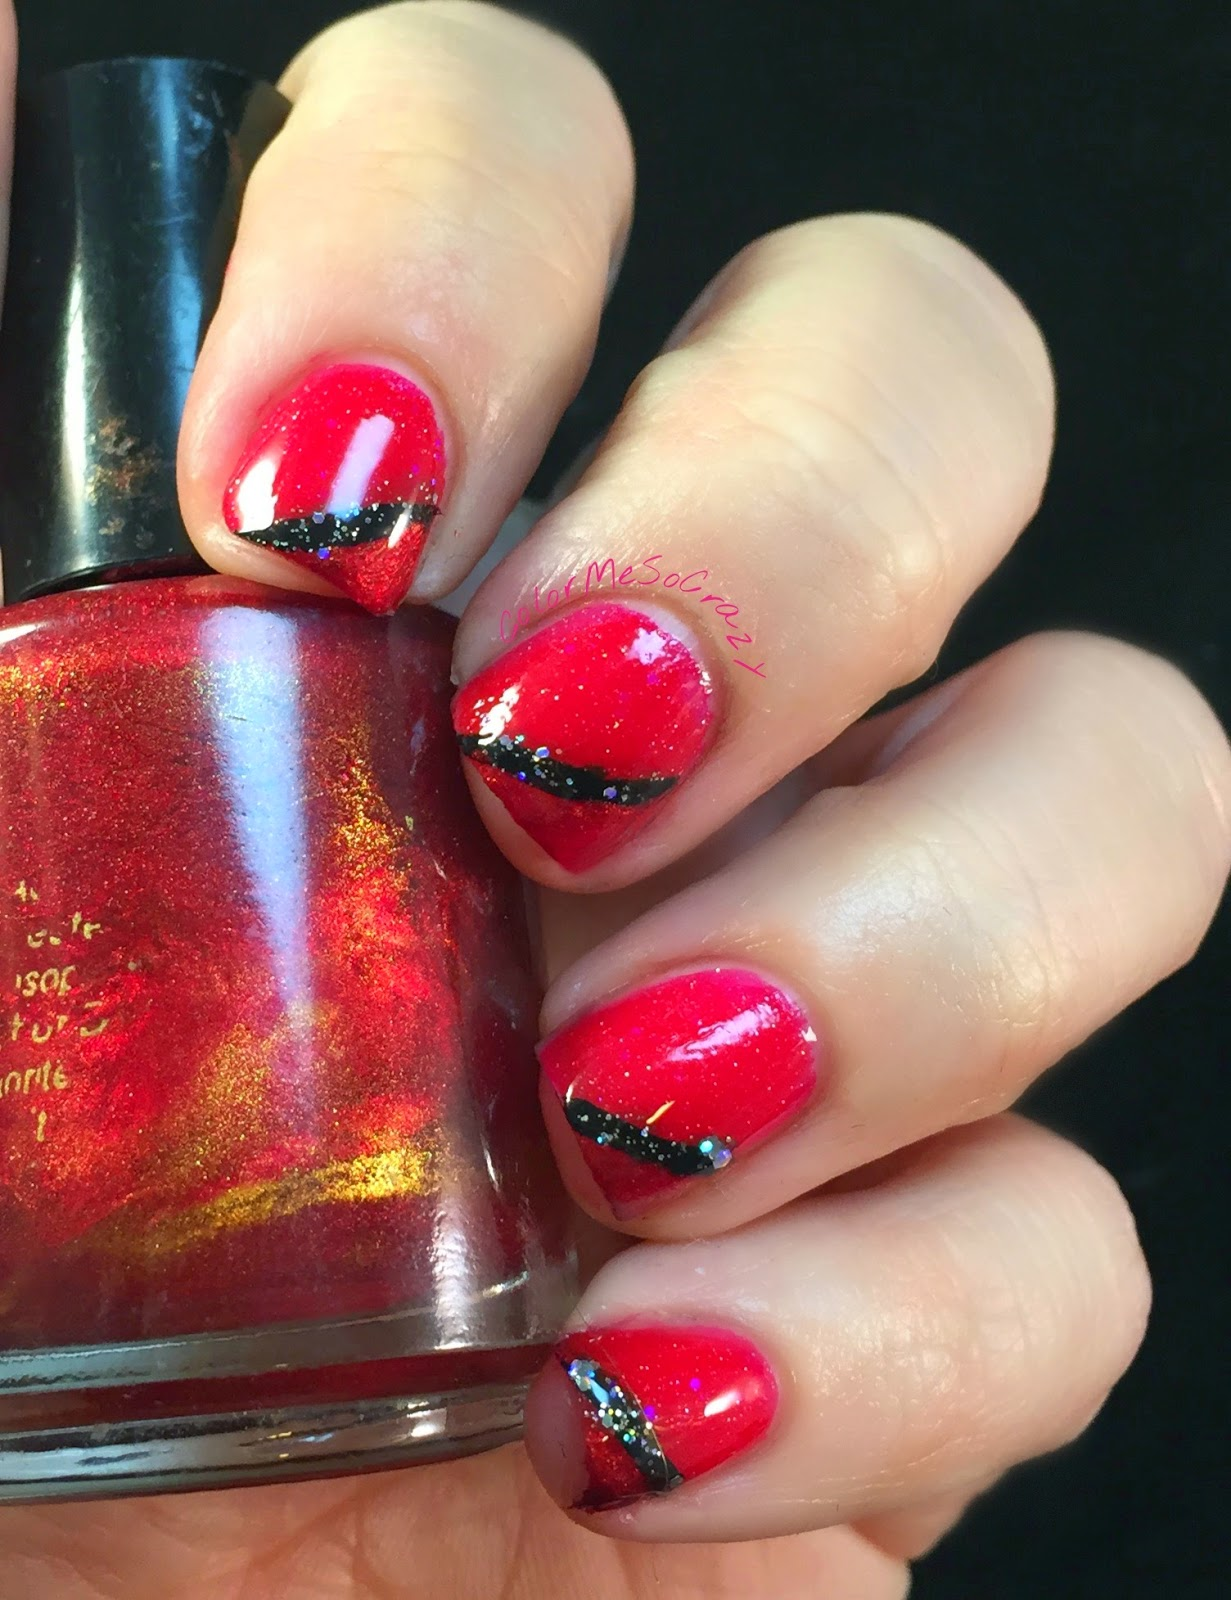 sation, pretty little liars, pretty little liars nails, nail pattern boldness, red coat tuesday, red coat tuesday nails